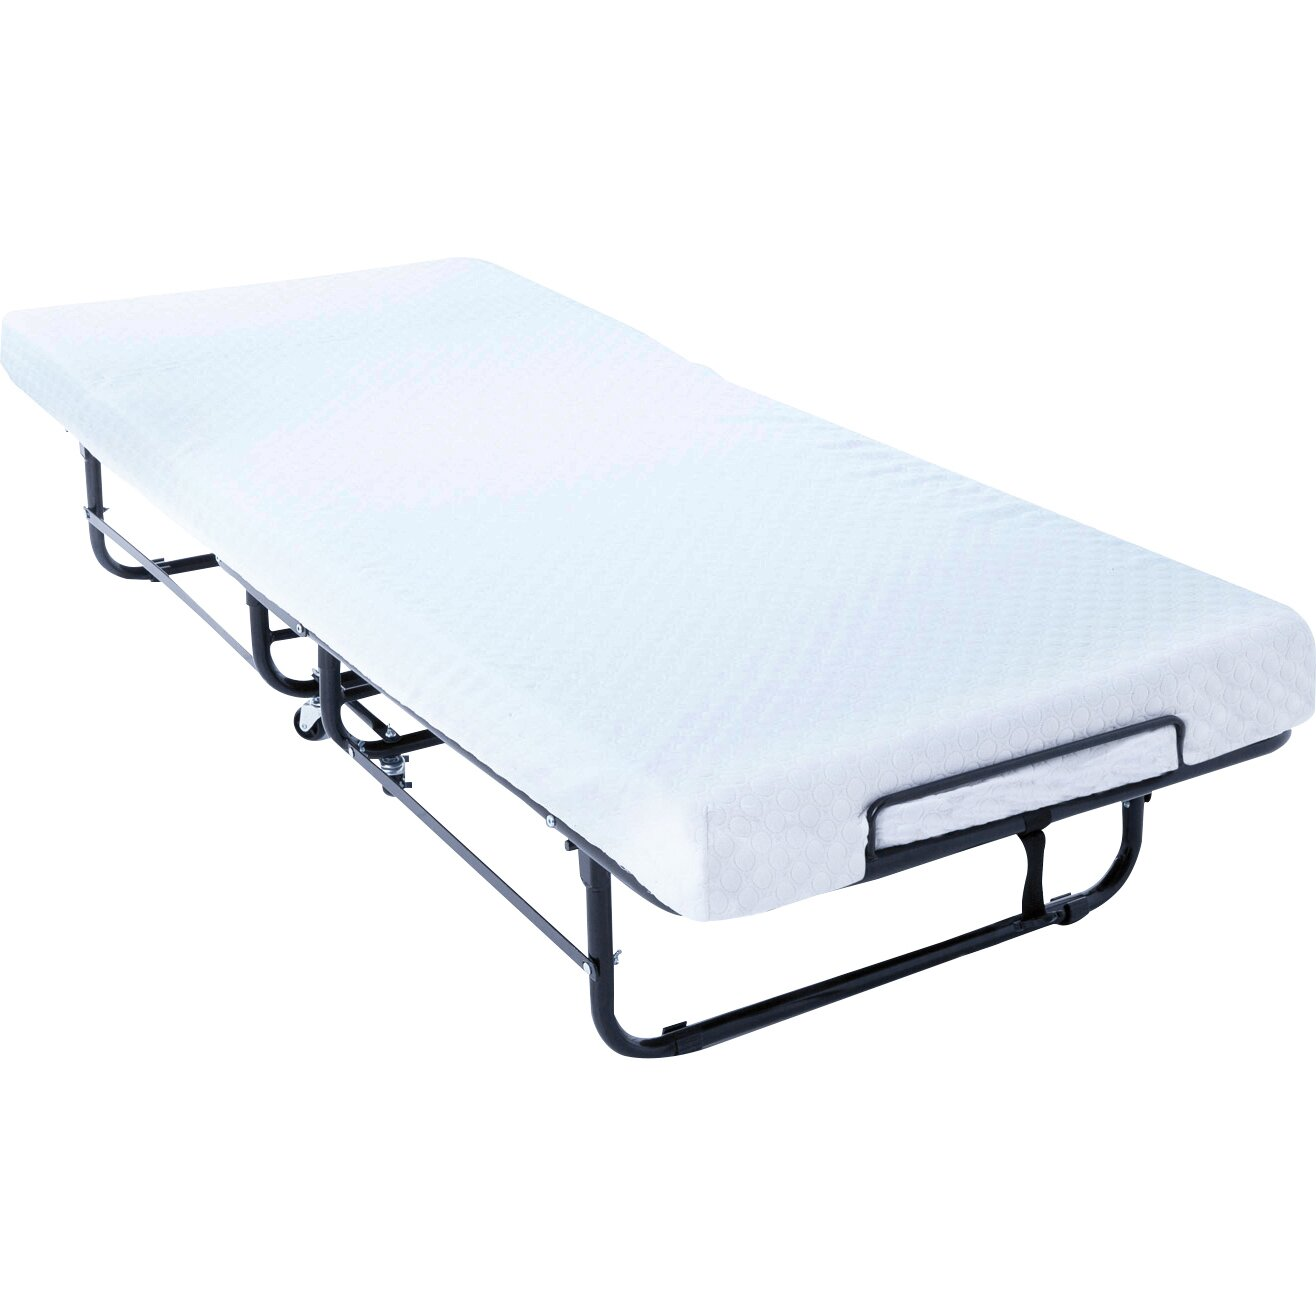 "Lucid Lucid 4"" Memory Foam Mattress & Reviews"